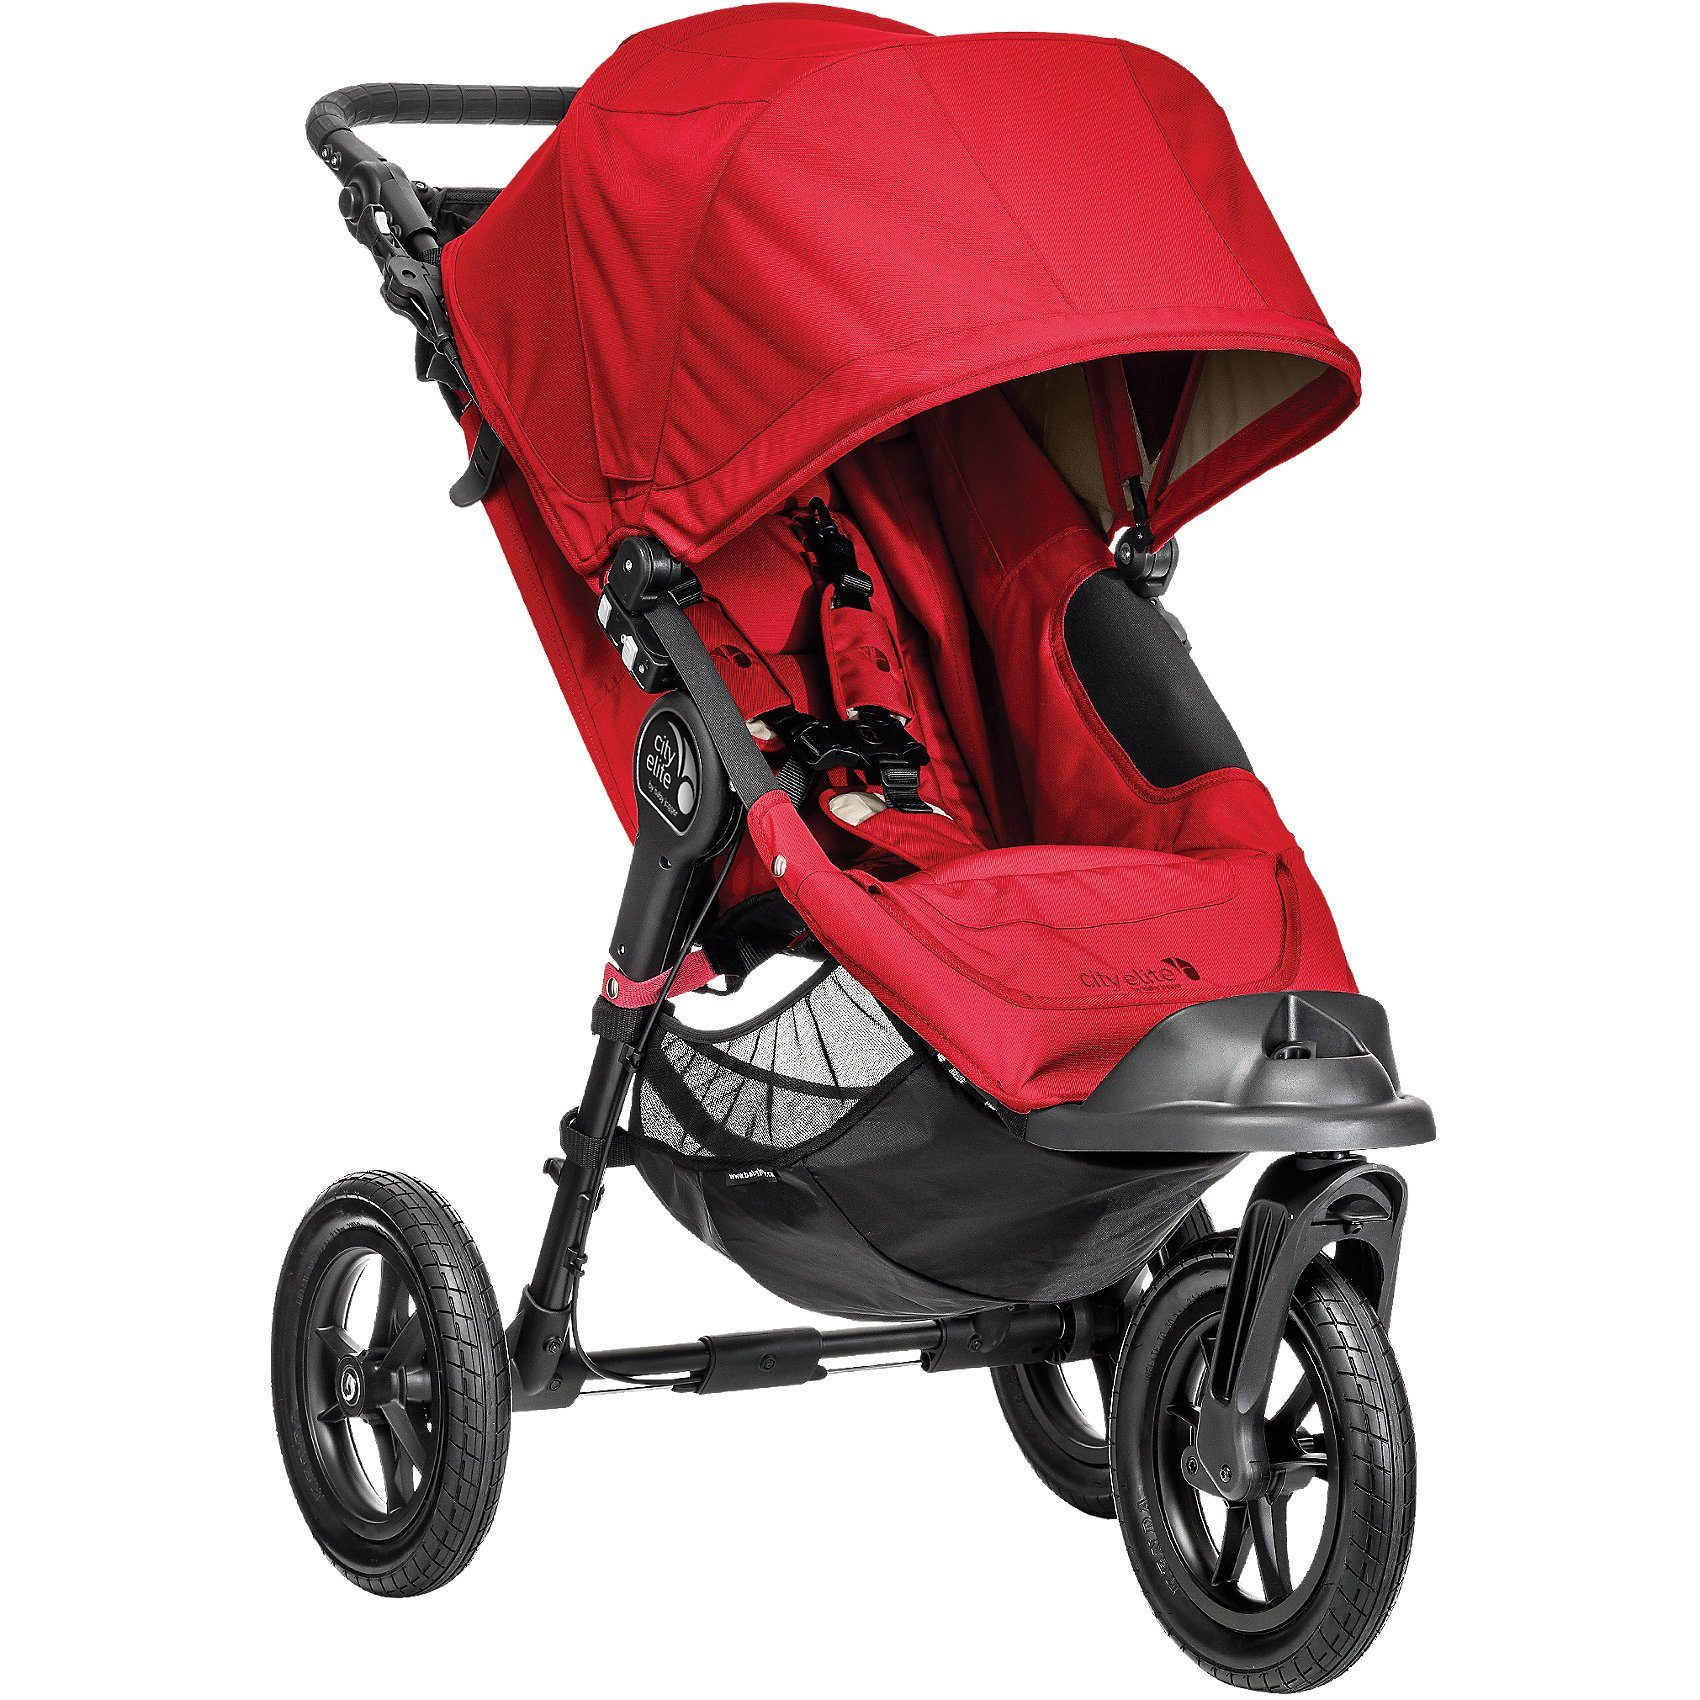 Baby Jogger Jogger City Elite inkl. Park- & Handbremse, red, 2016